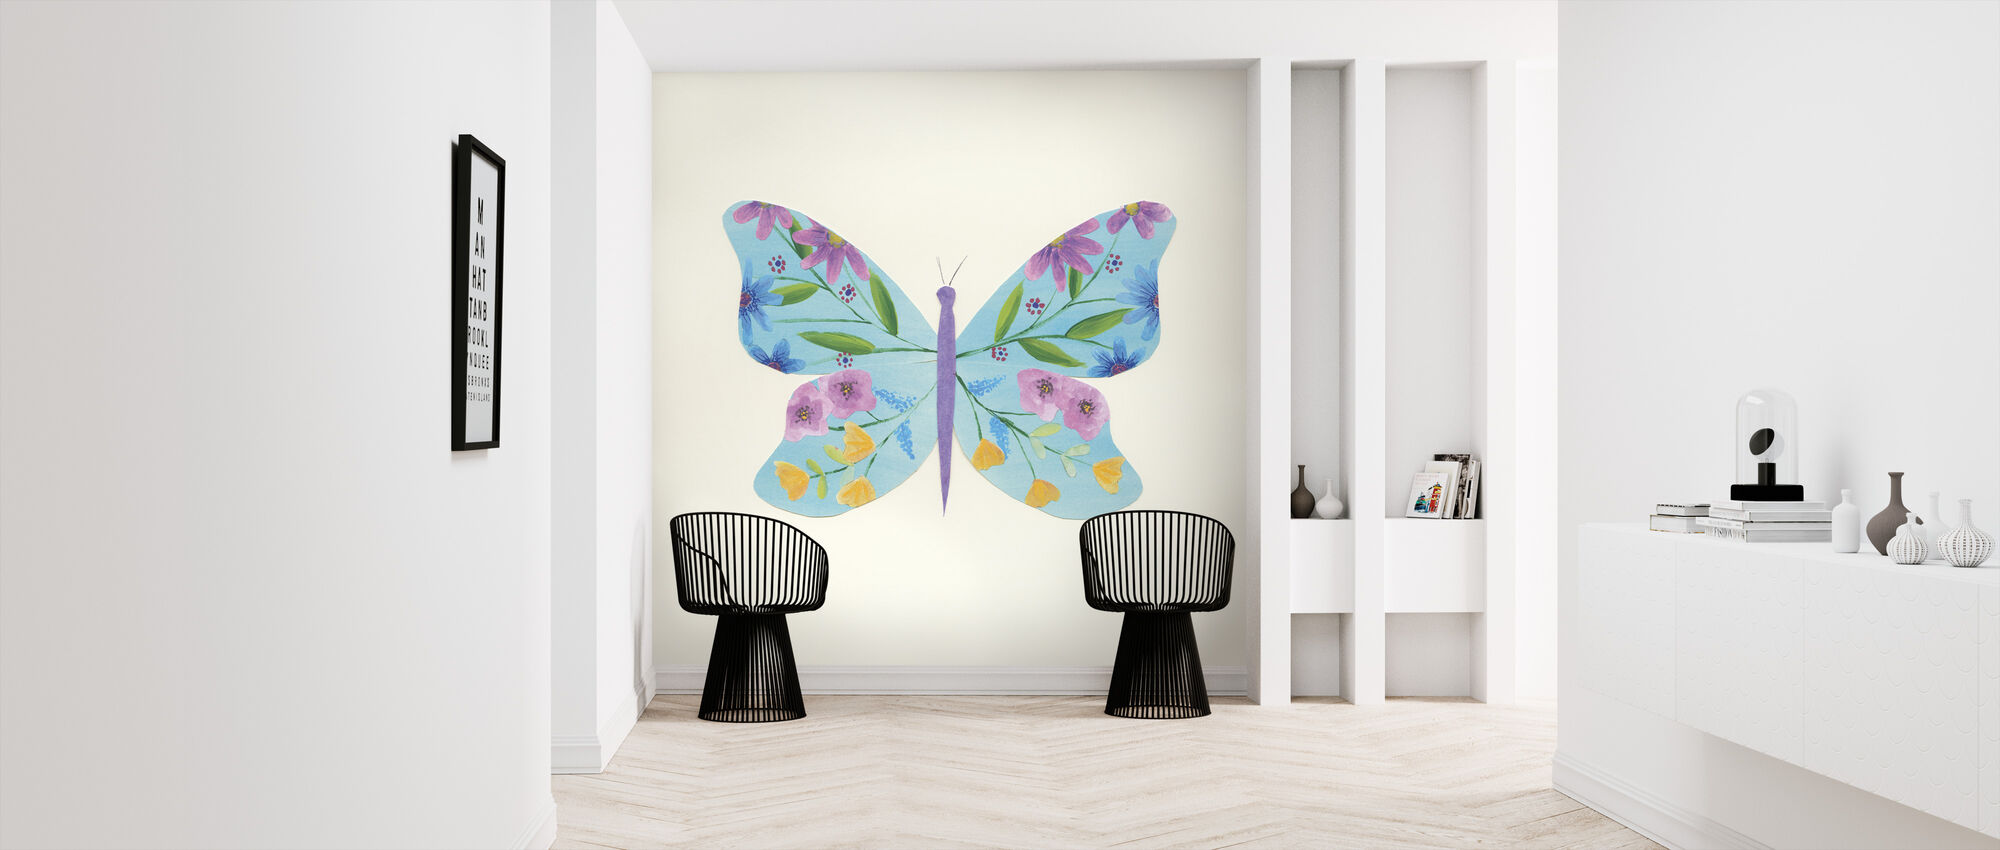 Butterfly Garden II - Wallpaper - Hallway